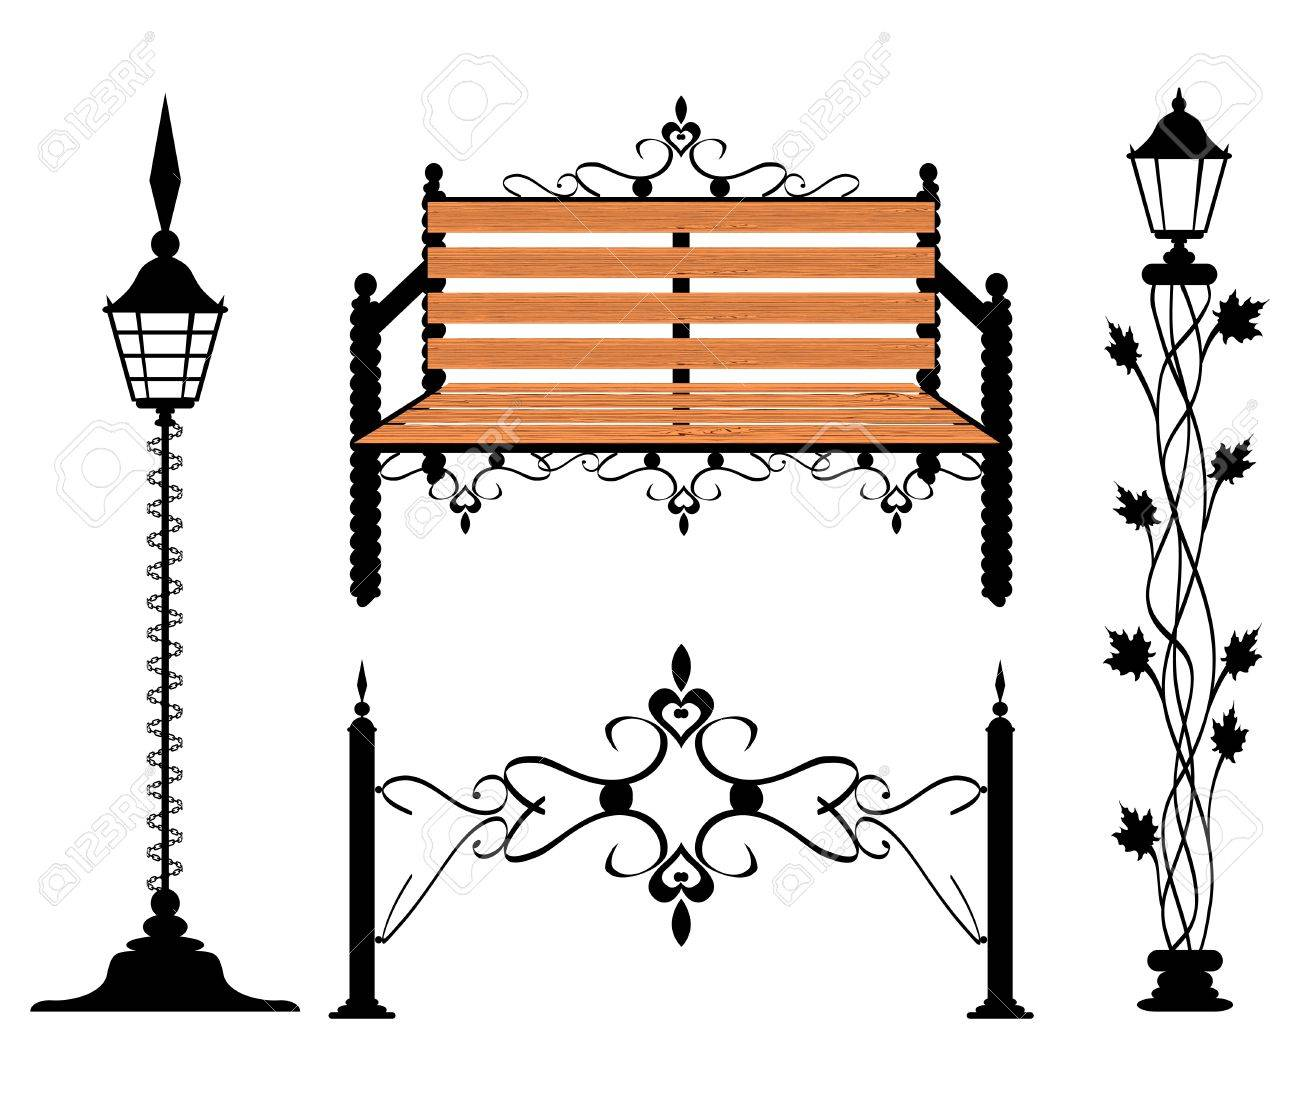 Wrought iron vintage signs and decor elements Stock Vector - 12927284